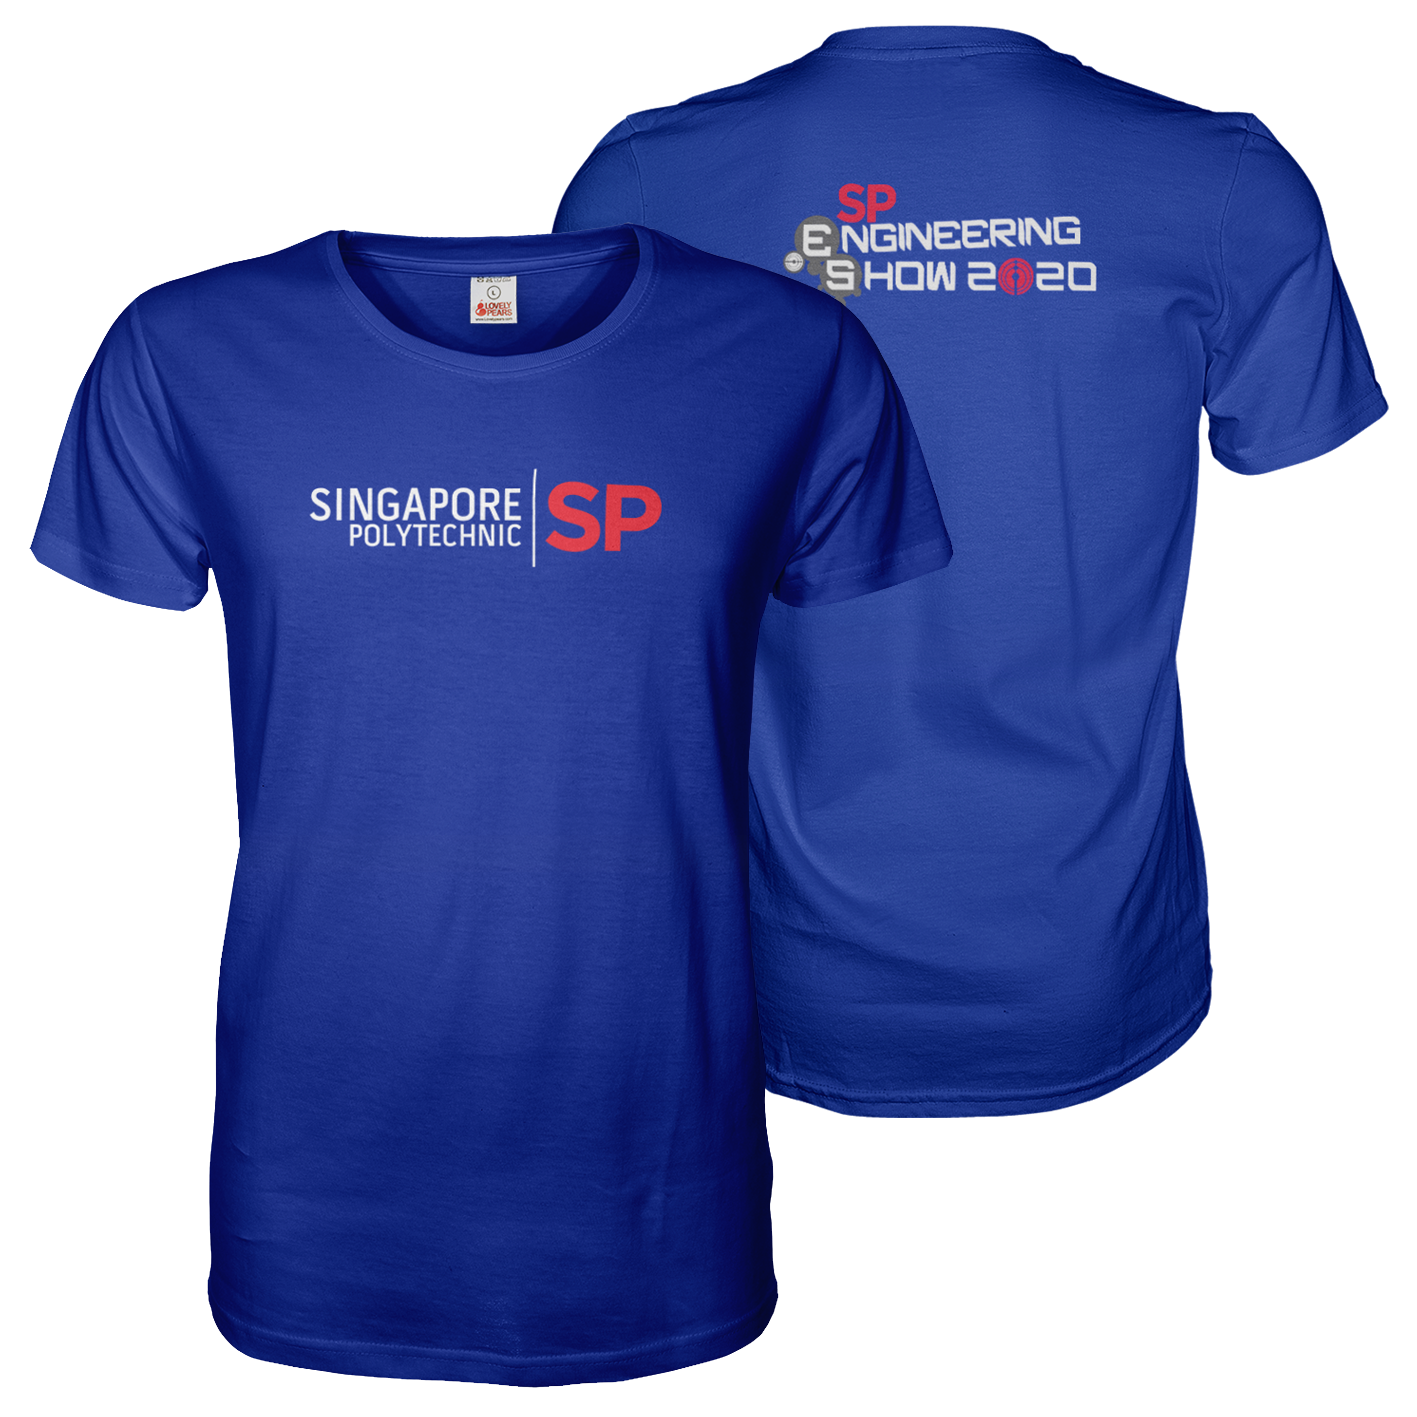 Royal Blue tee shirt with A4 Singapore Polytechnic Engineering Show front and back